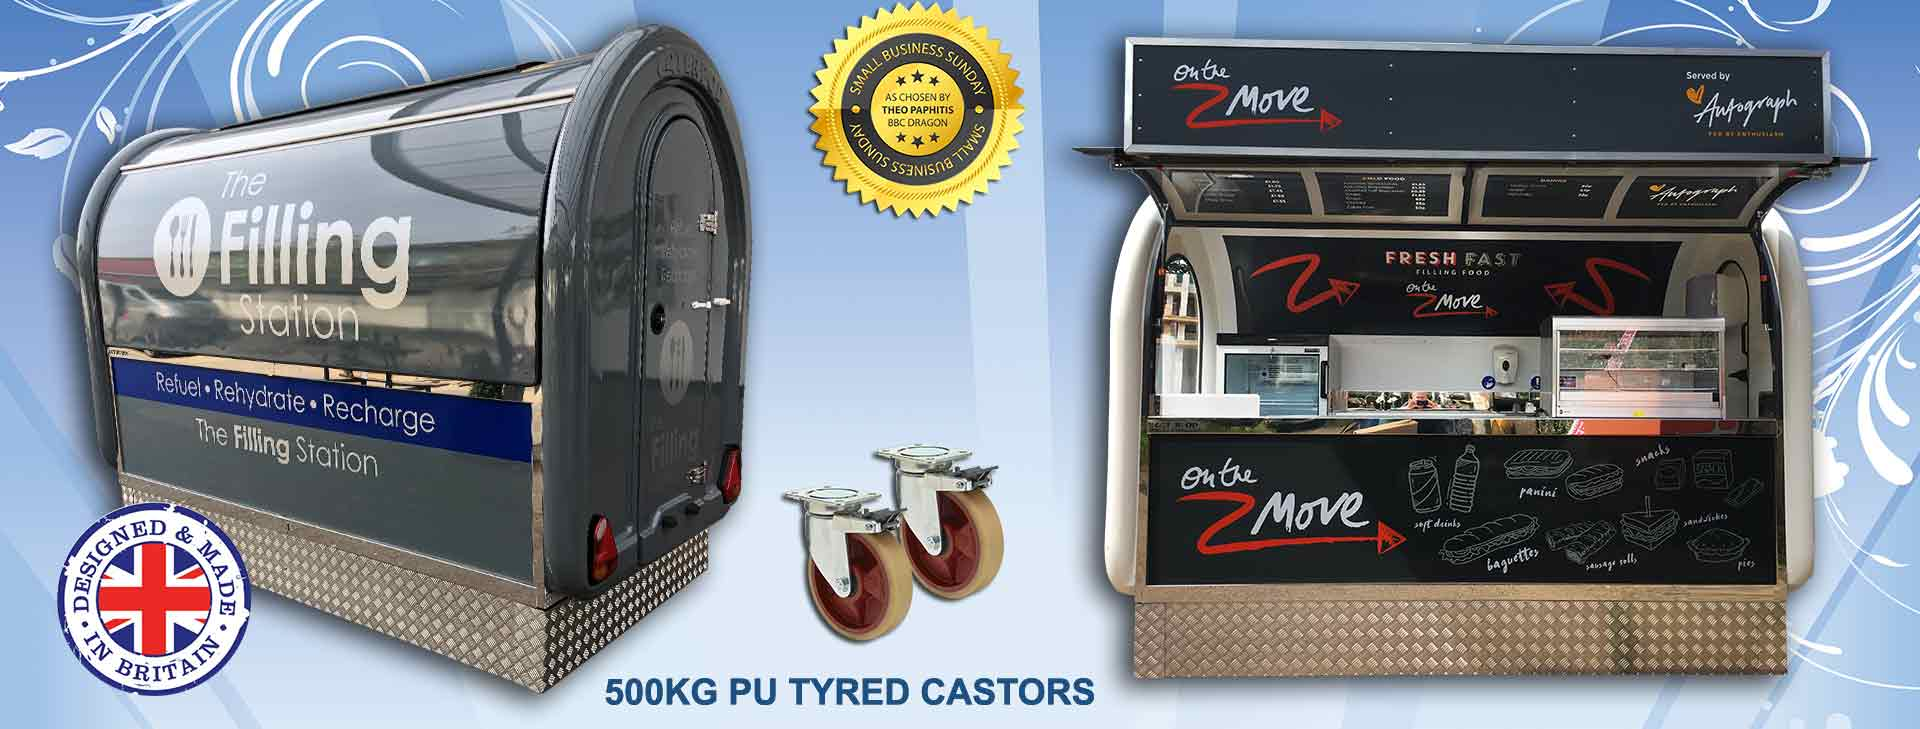 We build static kiosks too!  Perfect for Schools, Hotels, Shopping Malls & Theme parks